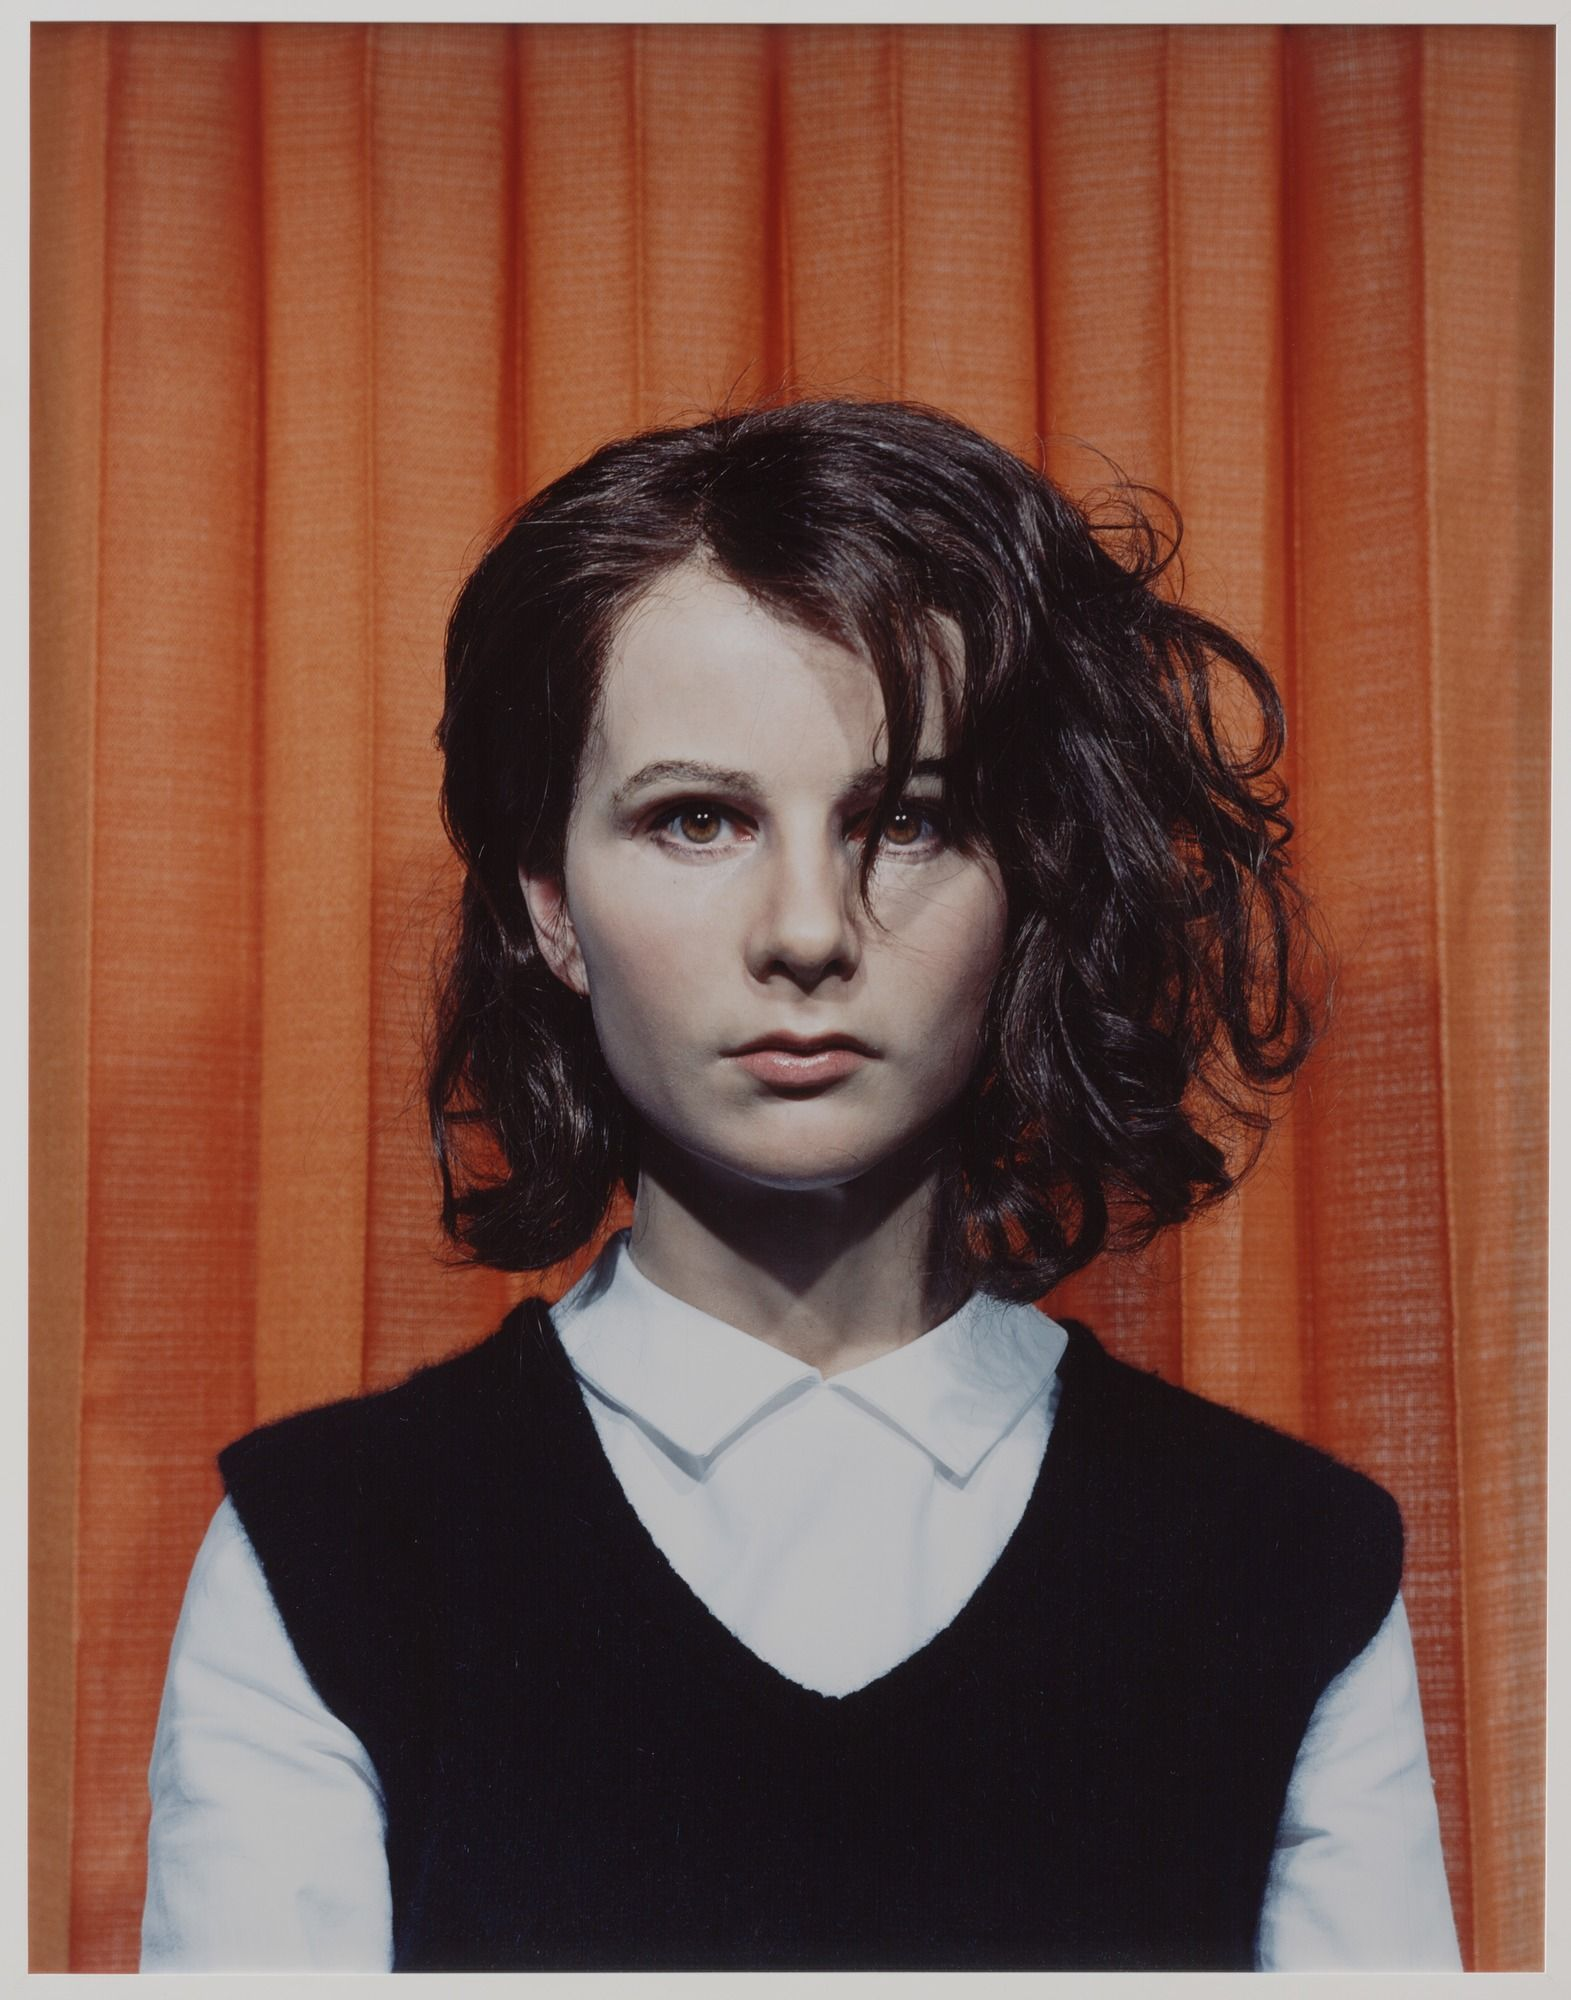 Gillian Wearing Self Portrait At 17 Years Old 2003 Portrait Self Portrait Portrait Photography